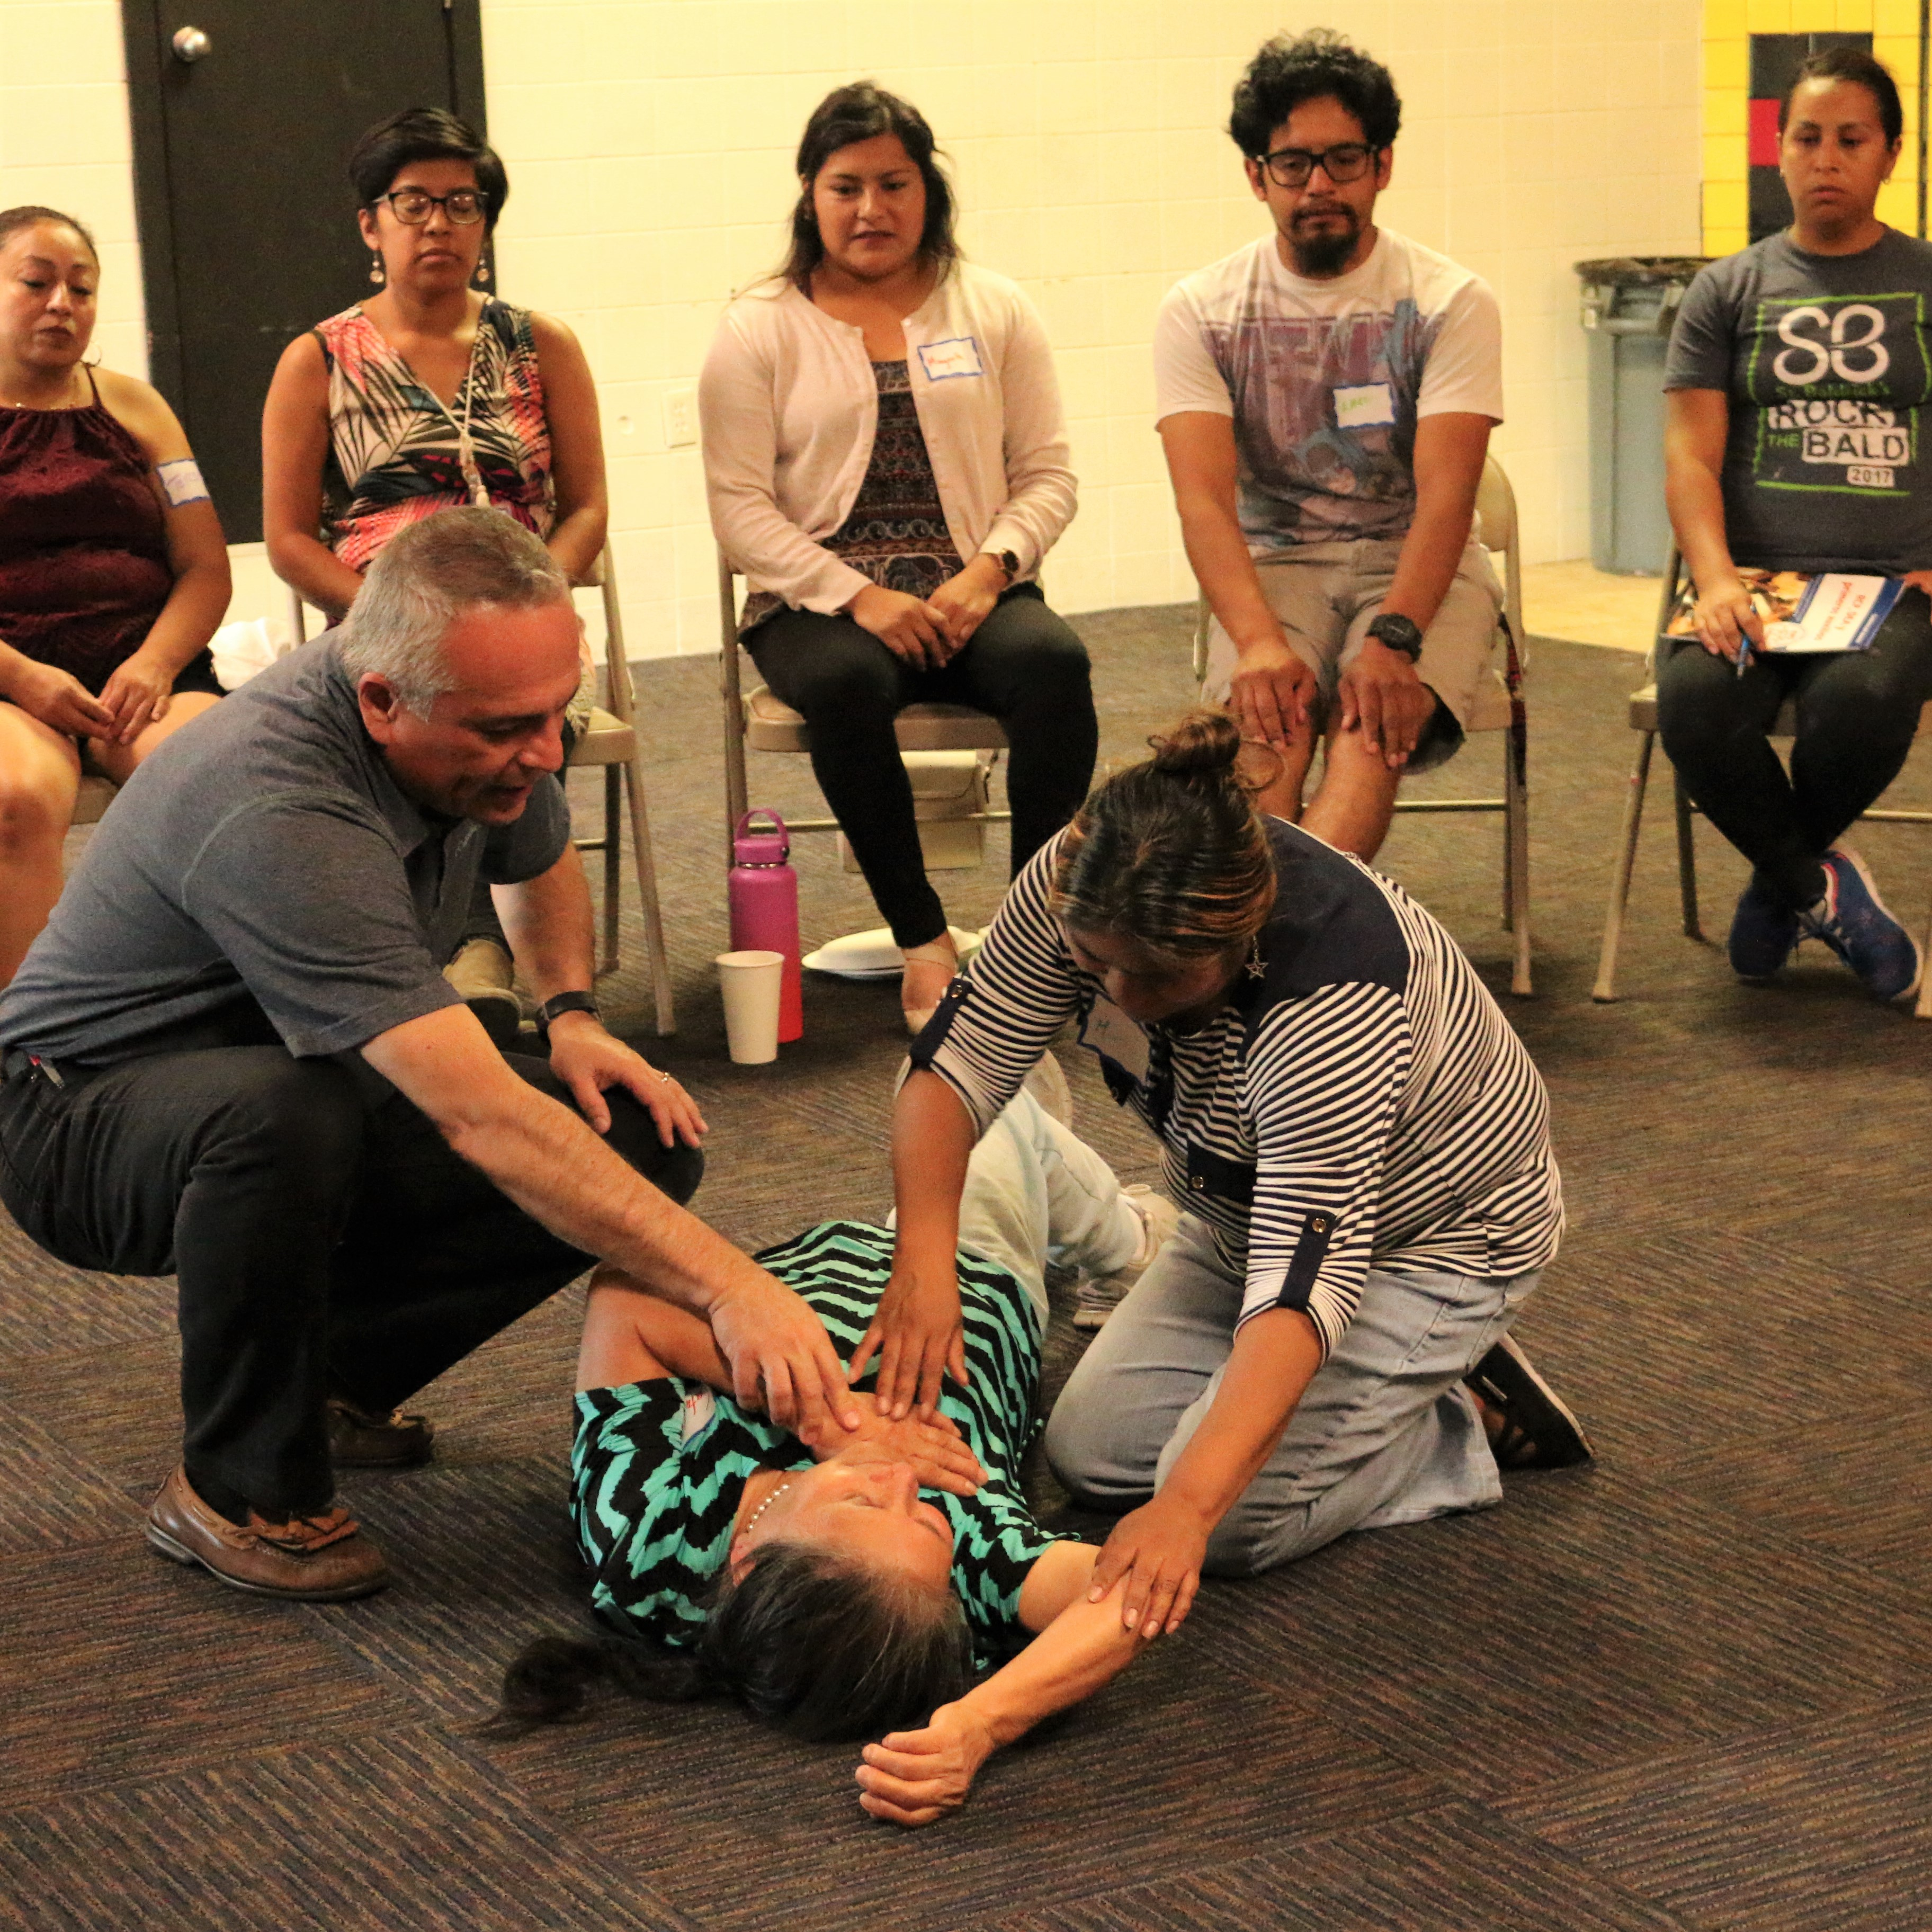 LISTOS volunteers receive CPR training in Portland's Cully neighborhood. An instructor shows a participant how to check the airway of victim volunteer. Several participants sit behind them and watch.